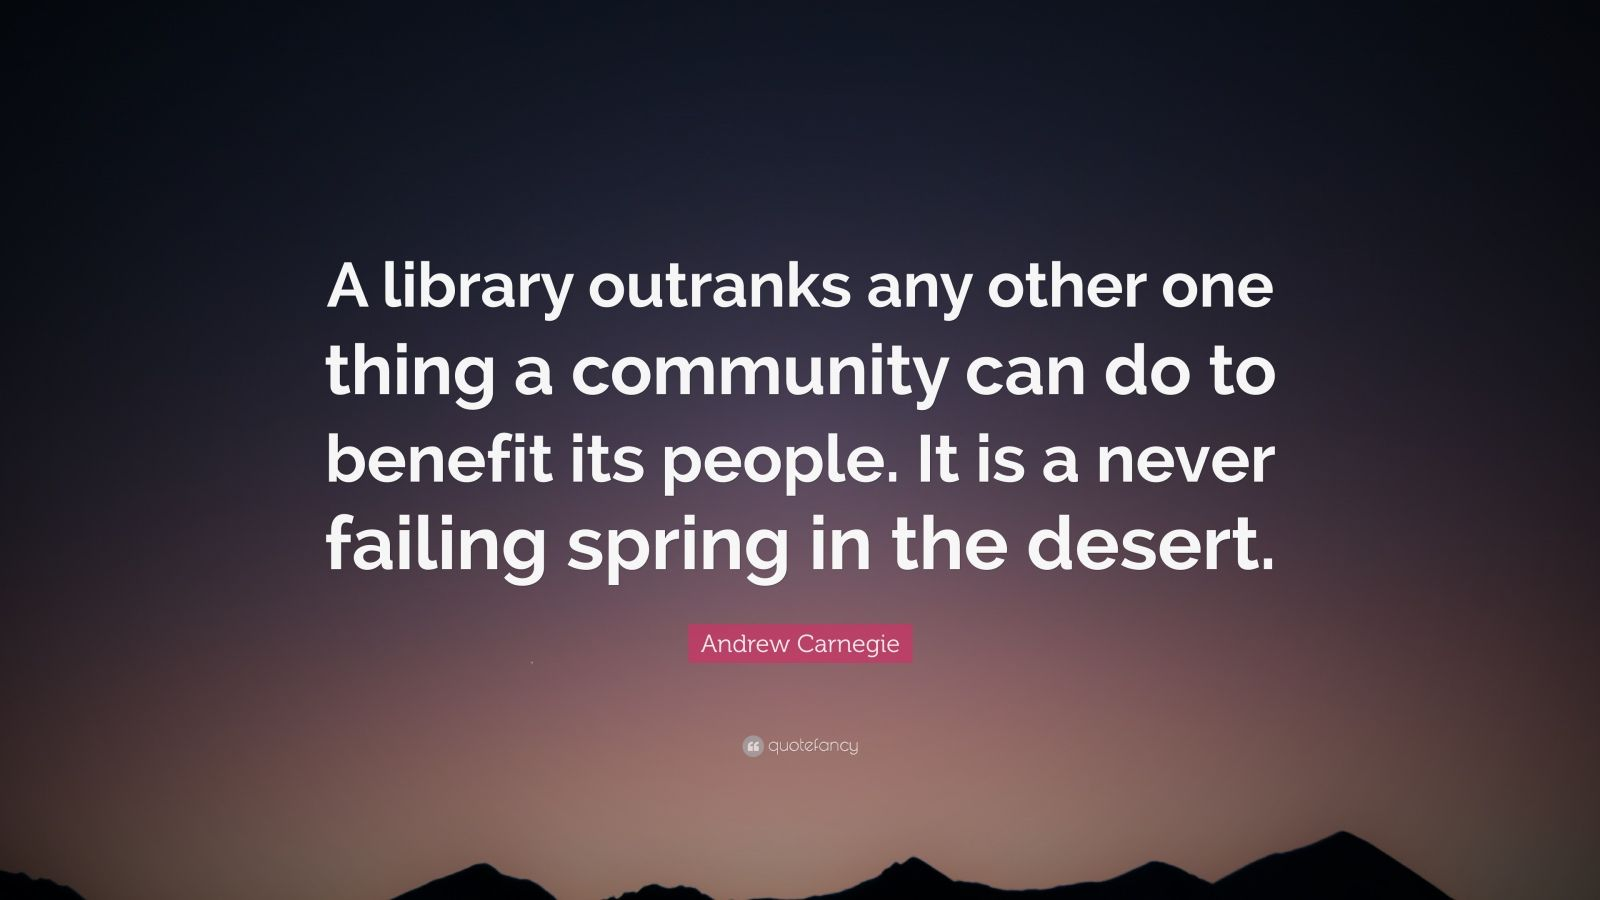 """Andrew Carnegie Quote: """"A library outranks any other one thing a community can do to benefit its people. It is a never failing spring in the desert."""""""